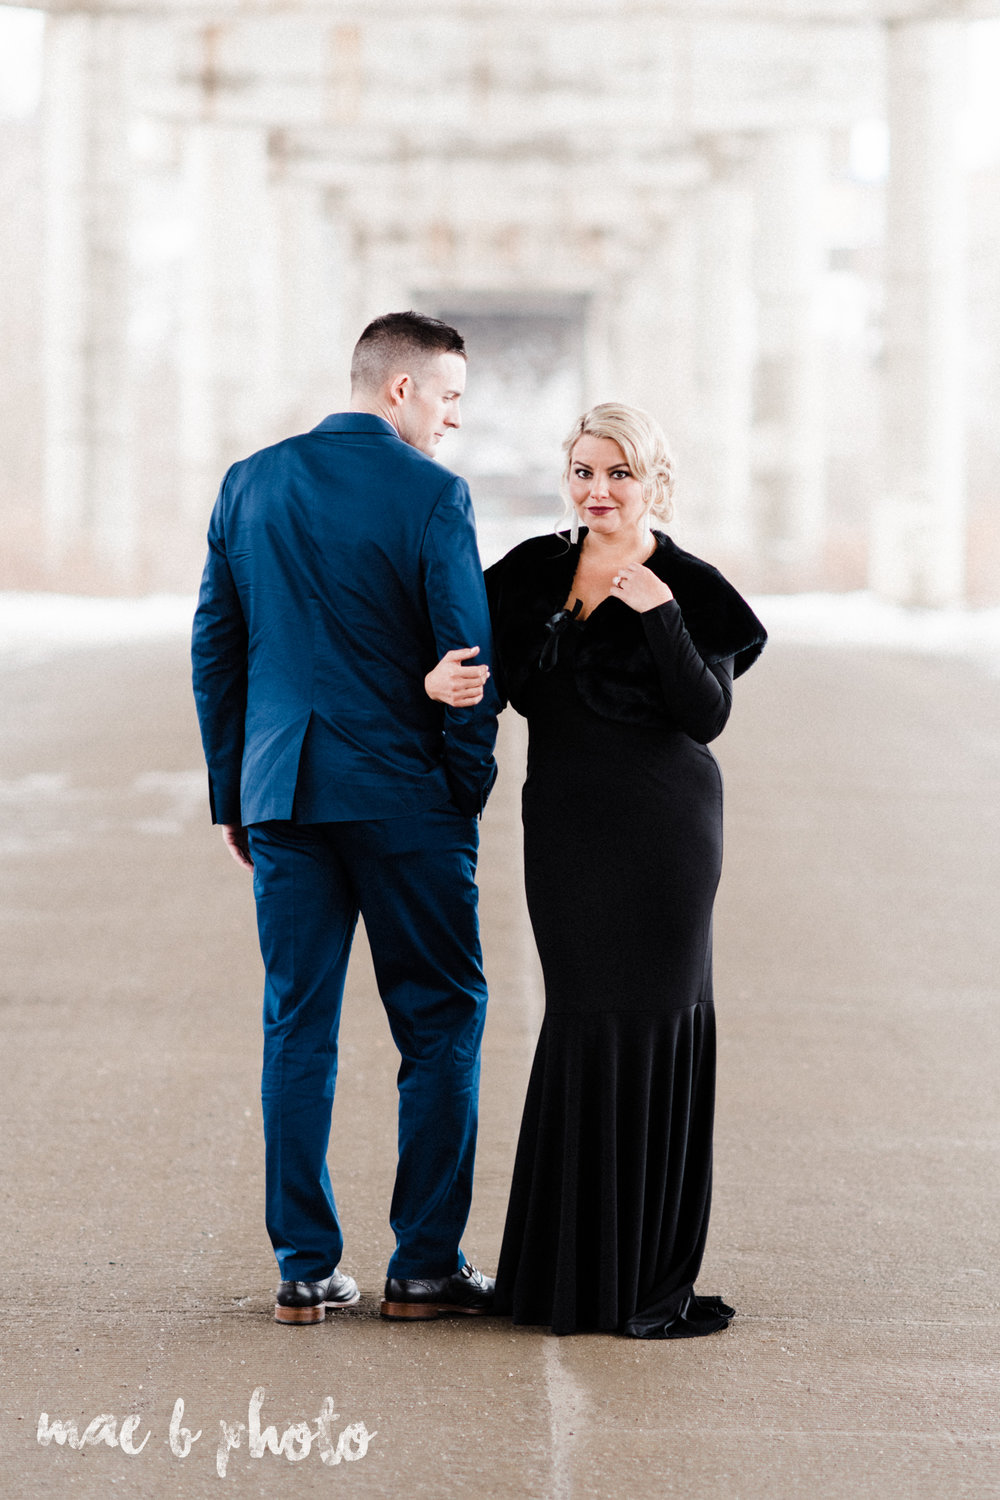 paige and cale's personalized winter glam engagement session at the butler institute of american art and downtown youngstown in youngstown ohio photographed by youngstown wedding photographer mae b photo-28.jpg